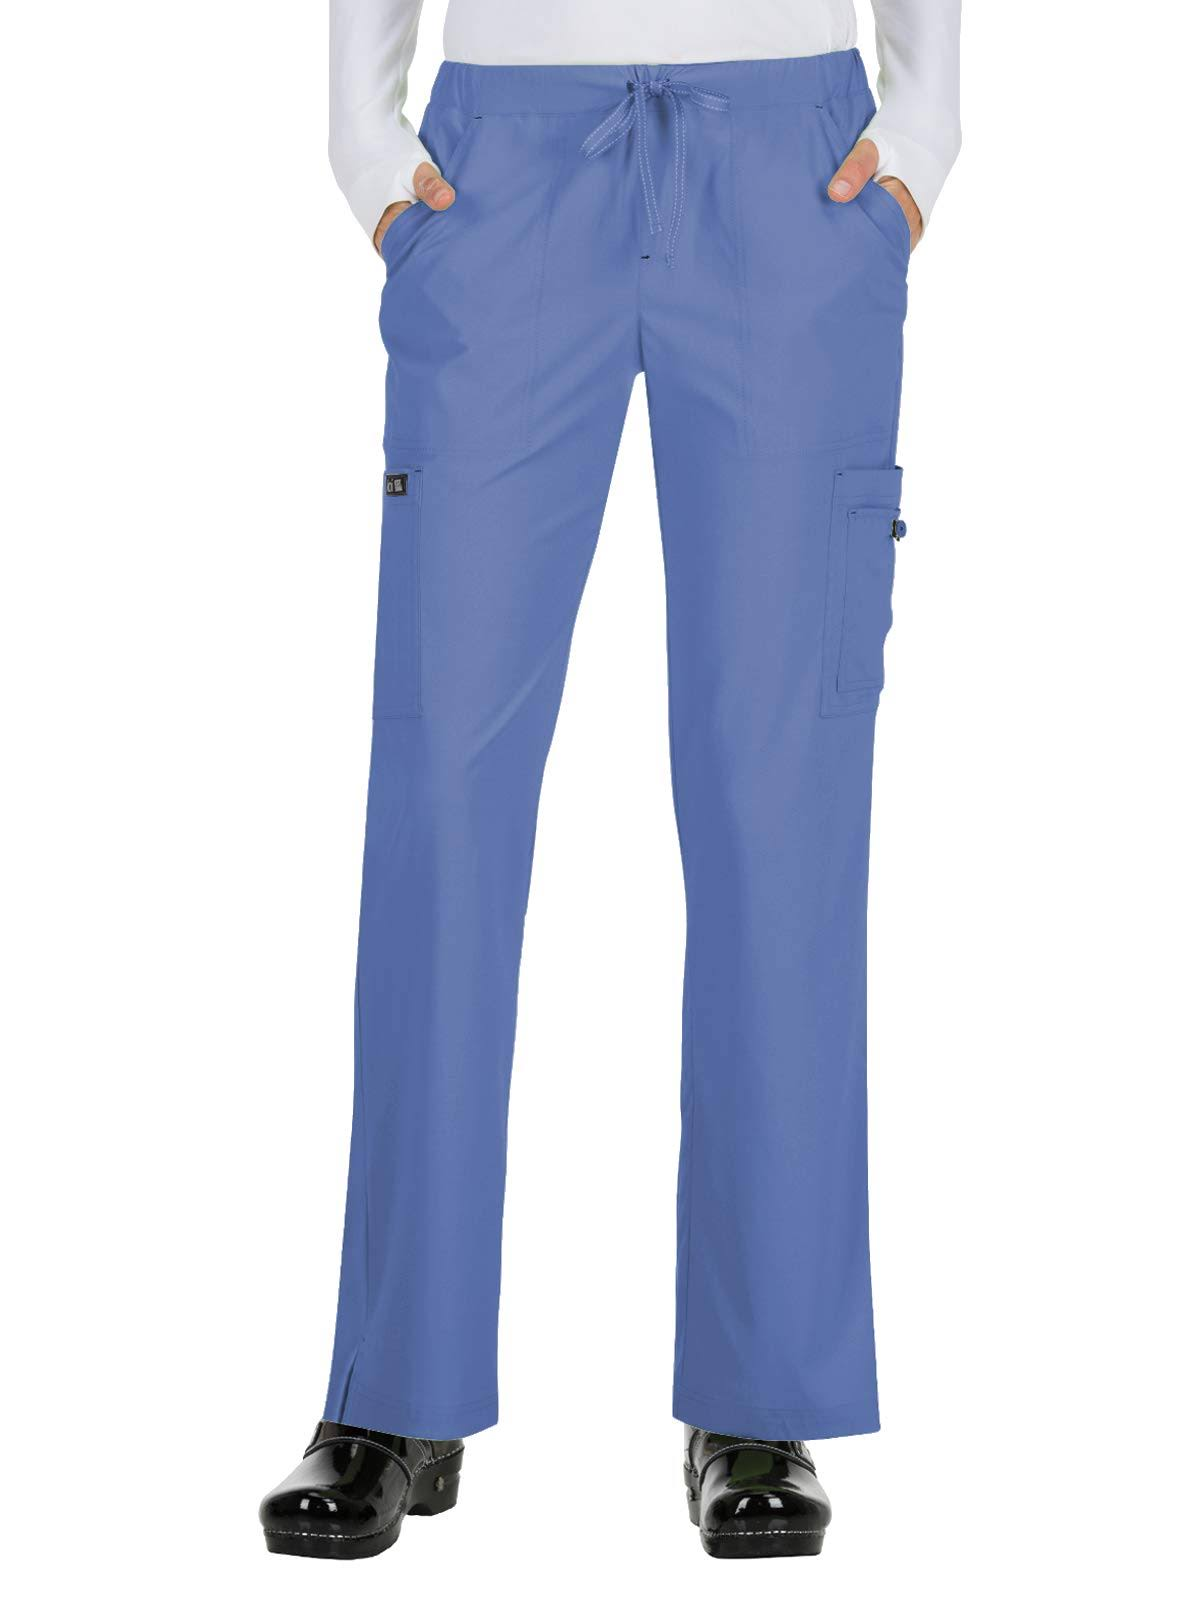 Koi Basics Women's Holly Cargo Scrub Pant